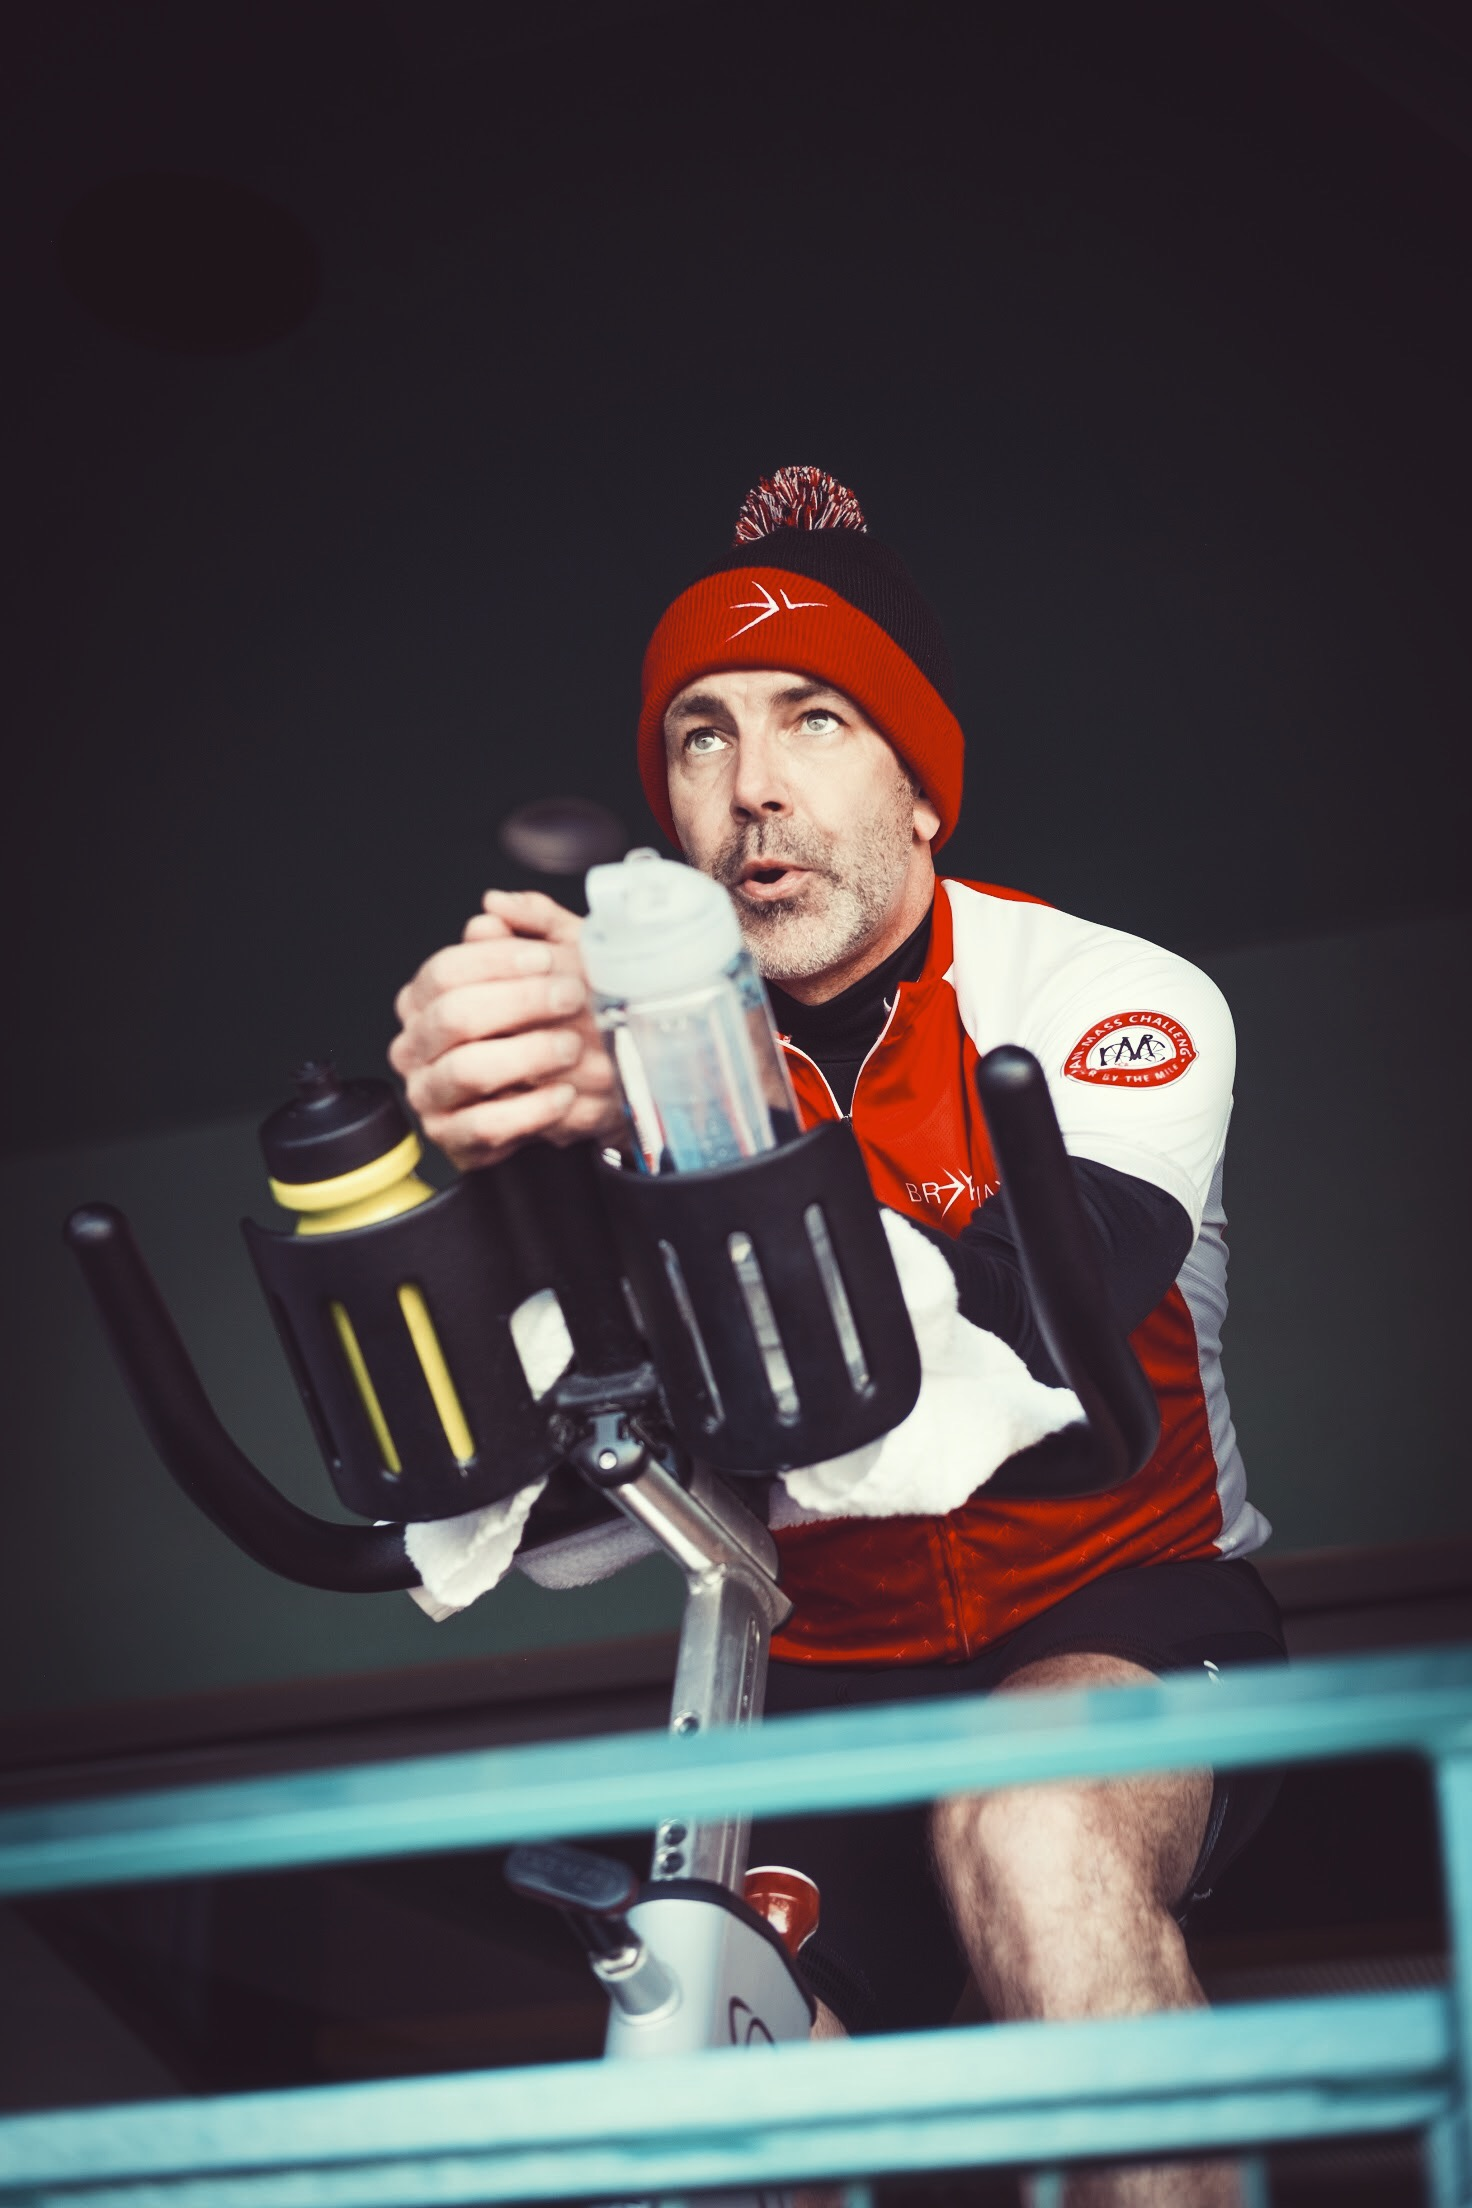 Dave Knies from Breakaway rides at Fenway PMC Winter Cycle.jpg